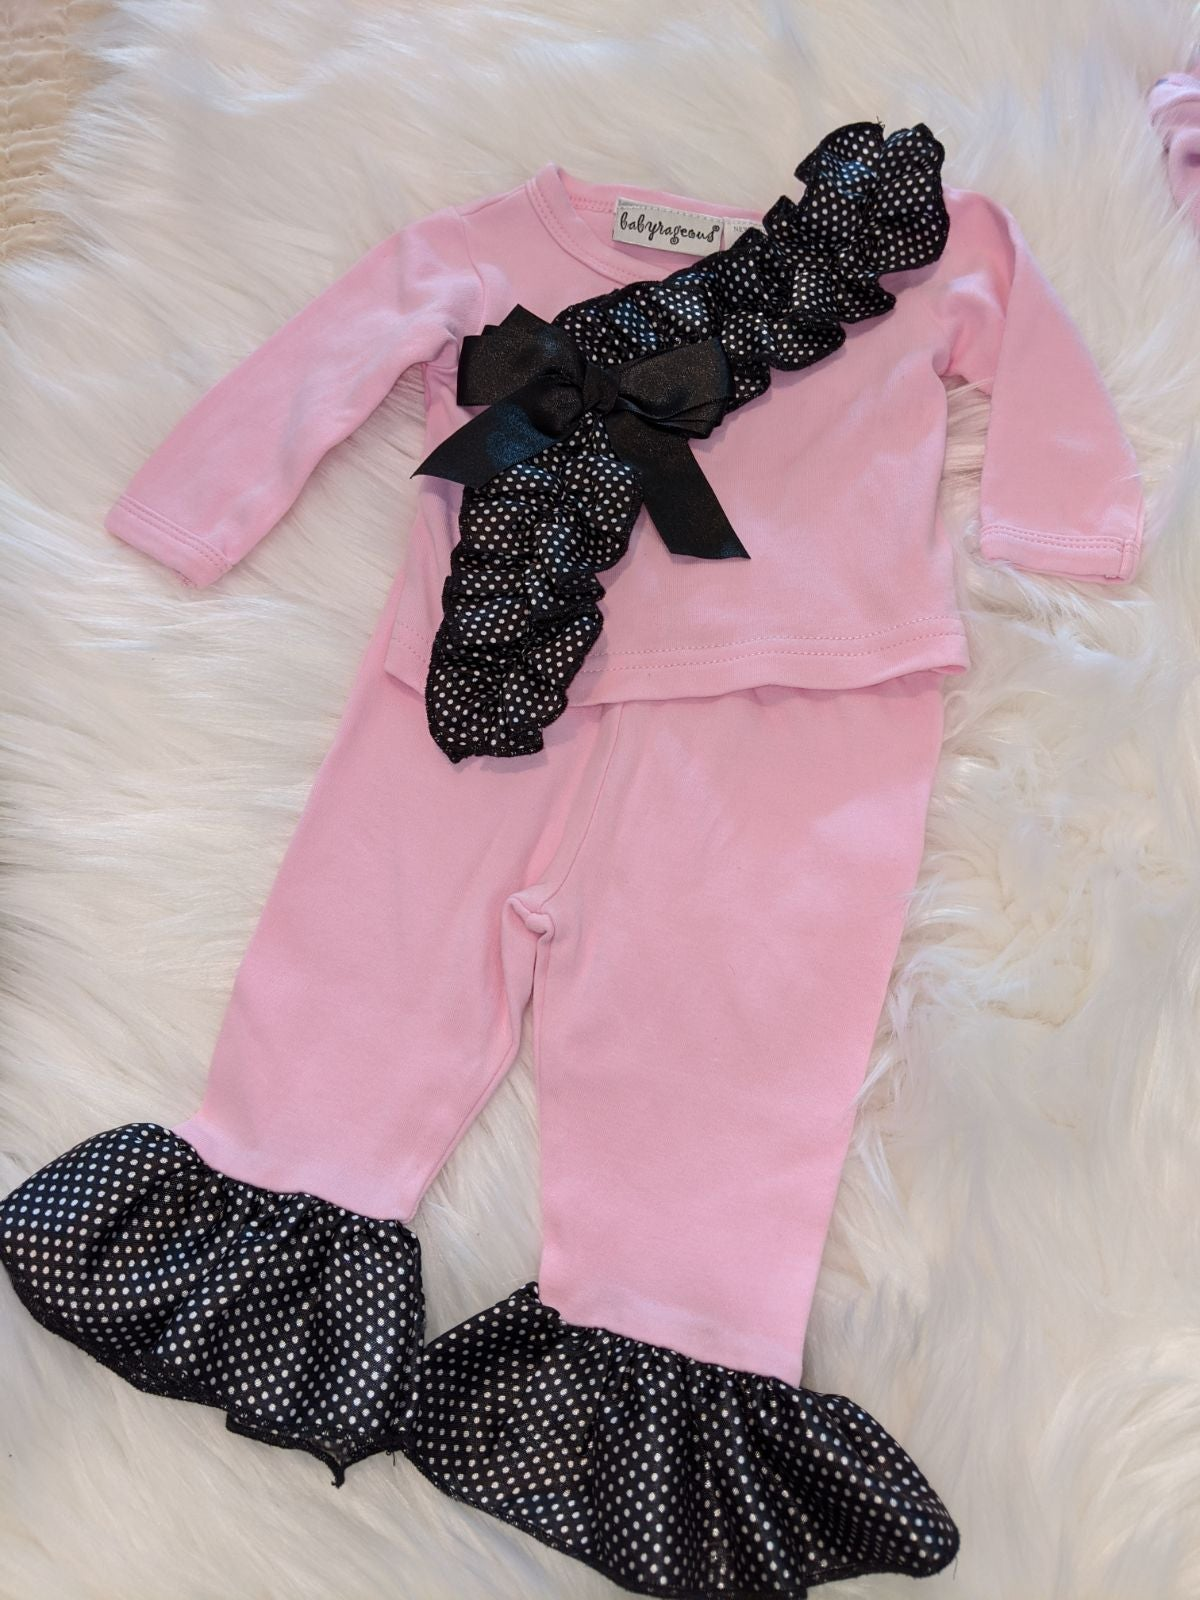 Babyrageous outfit